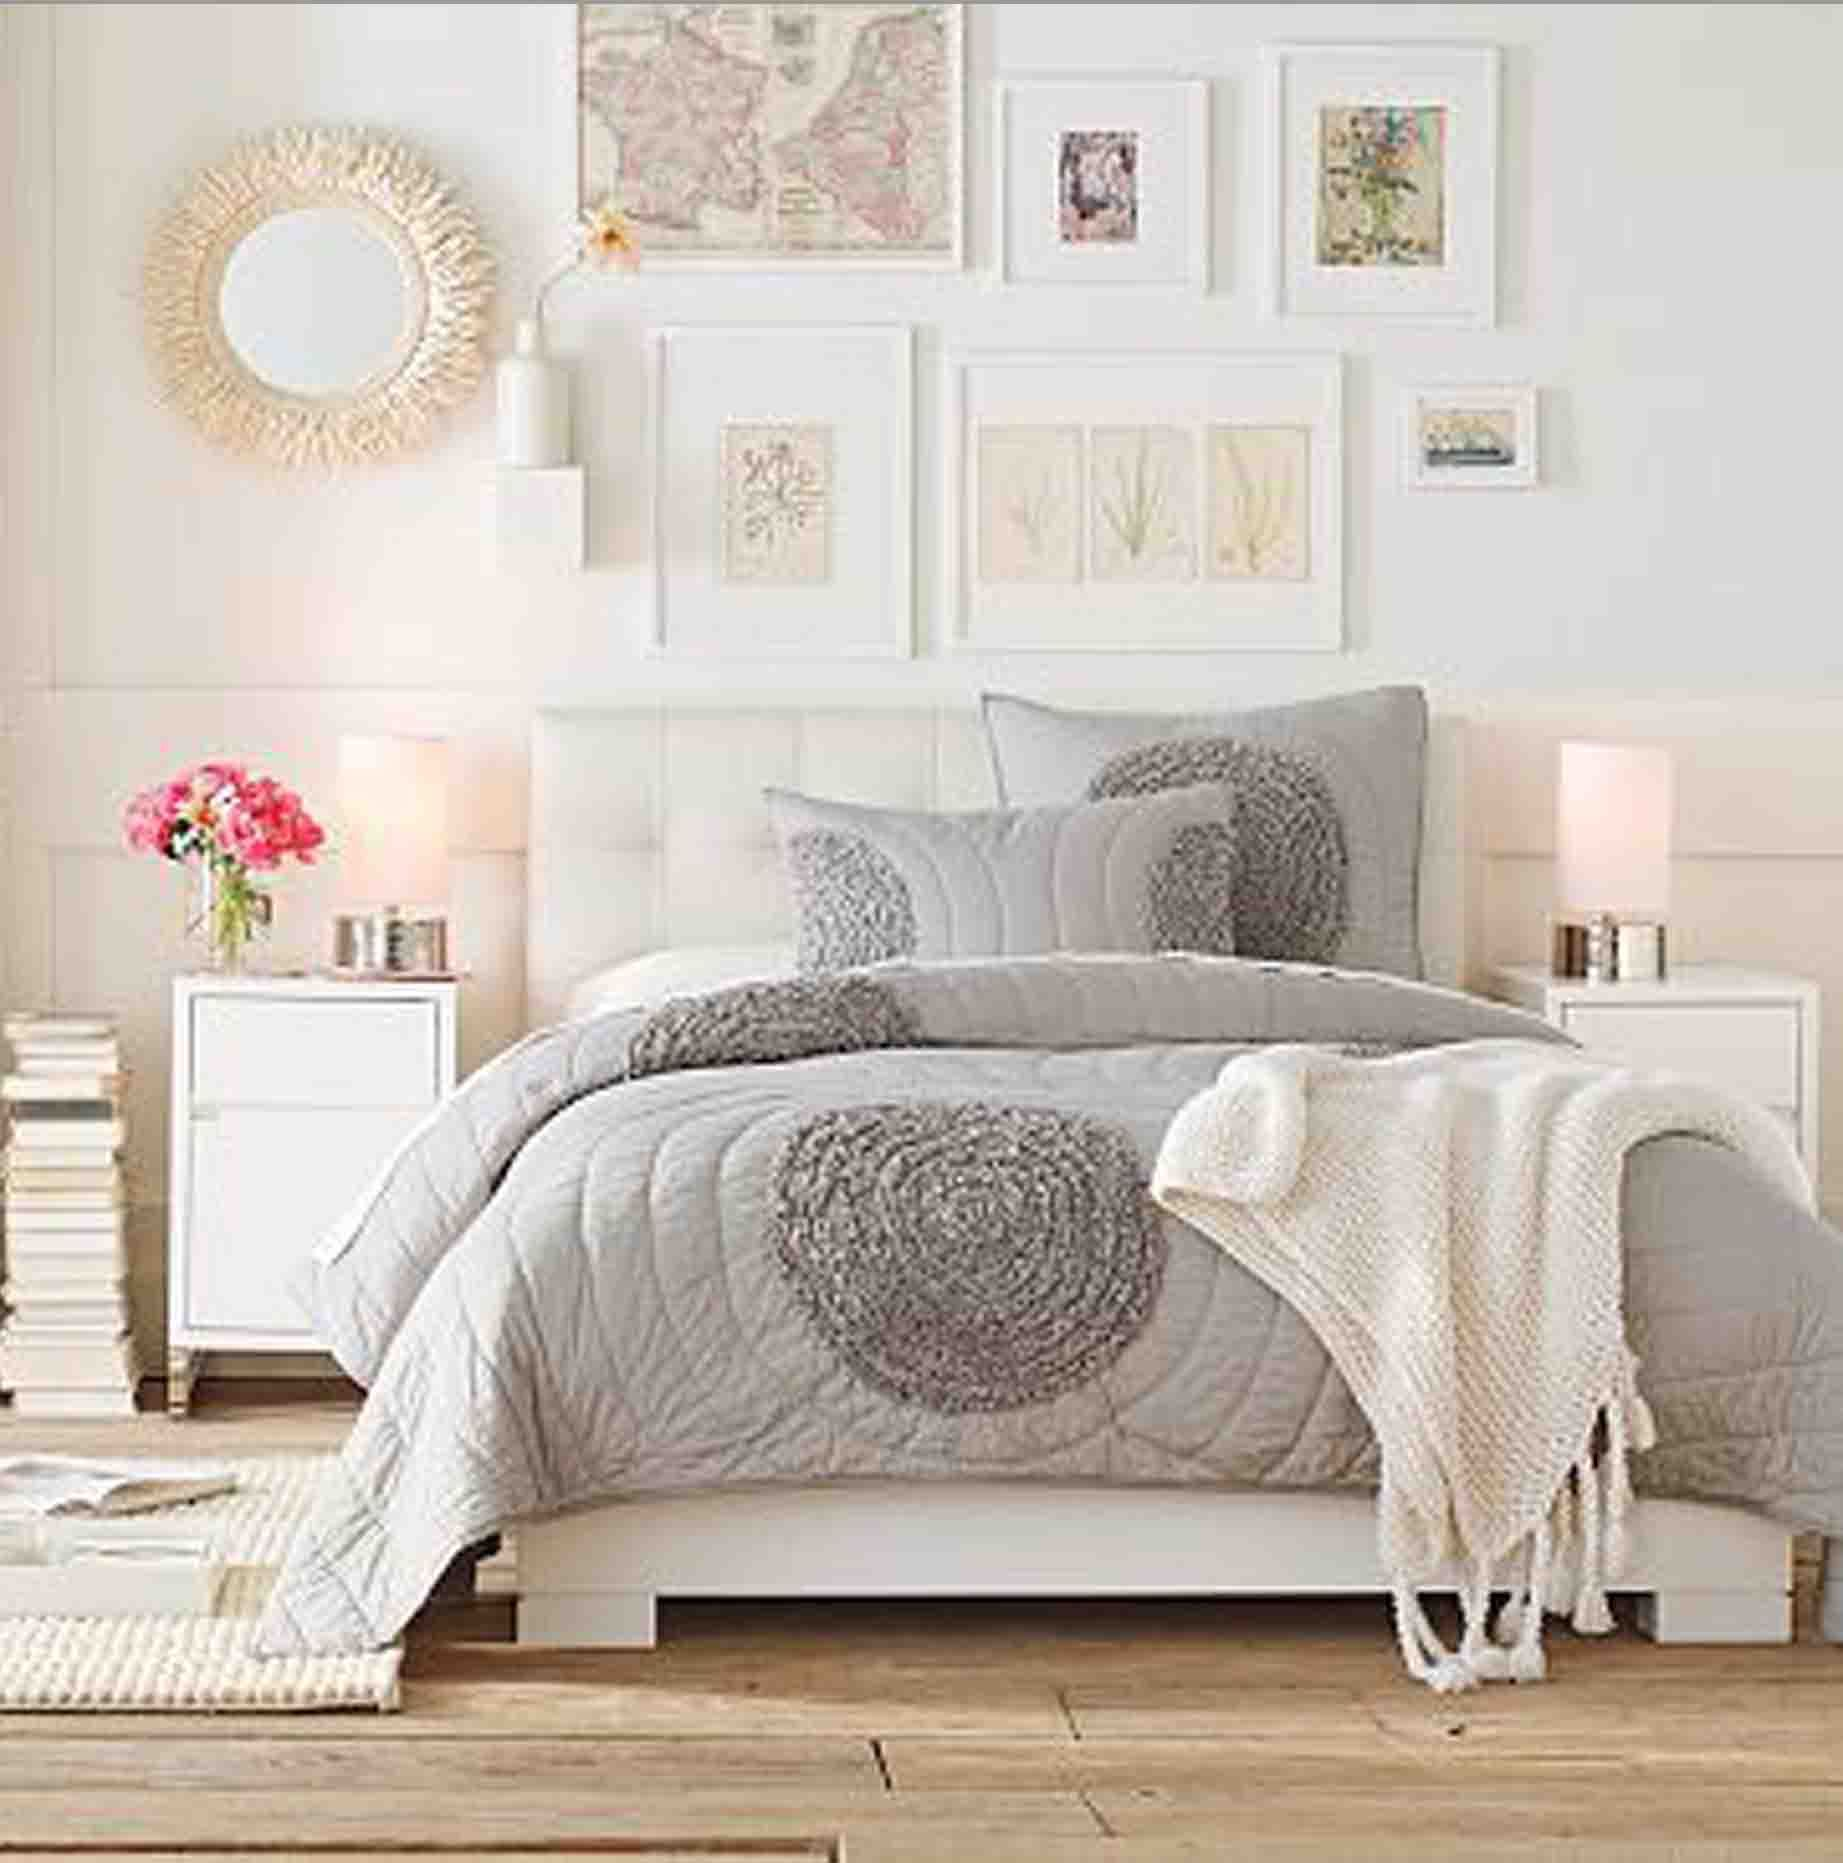 Light and bright bedroom ideas grey nutral white for Modern feminine bedroom designs